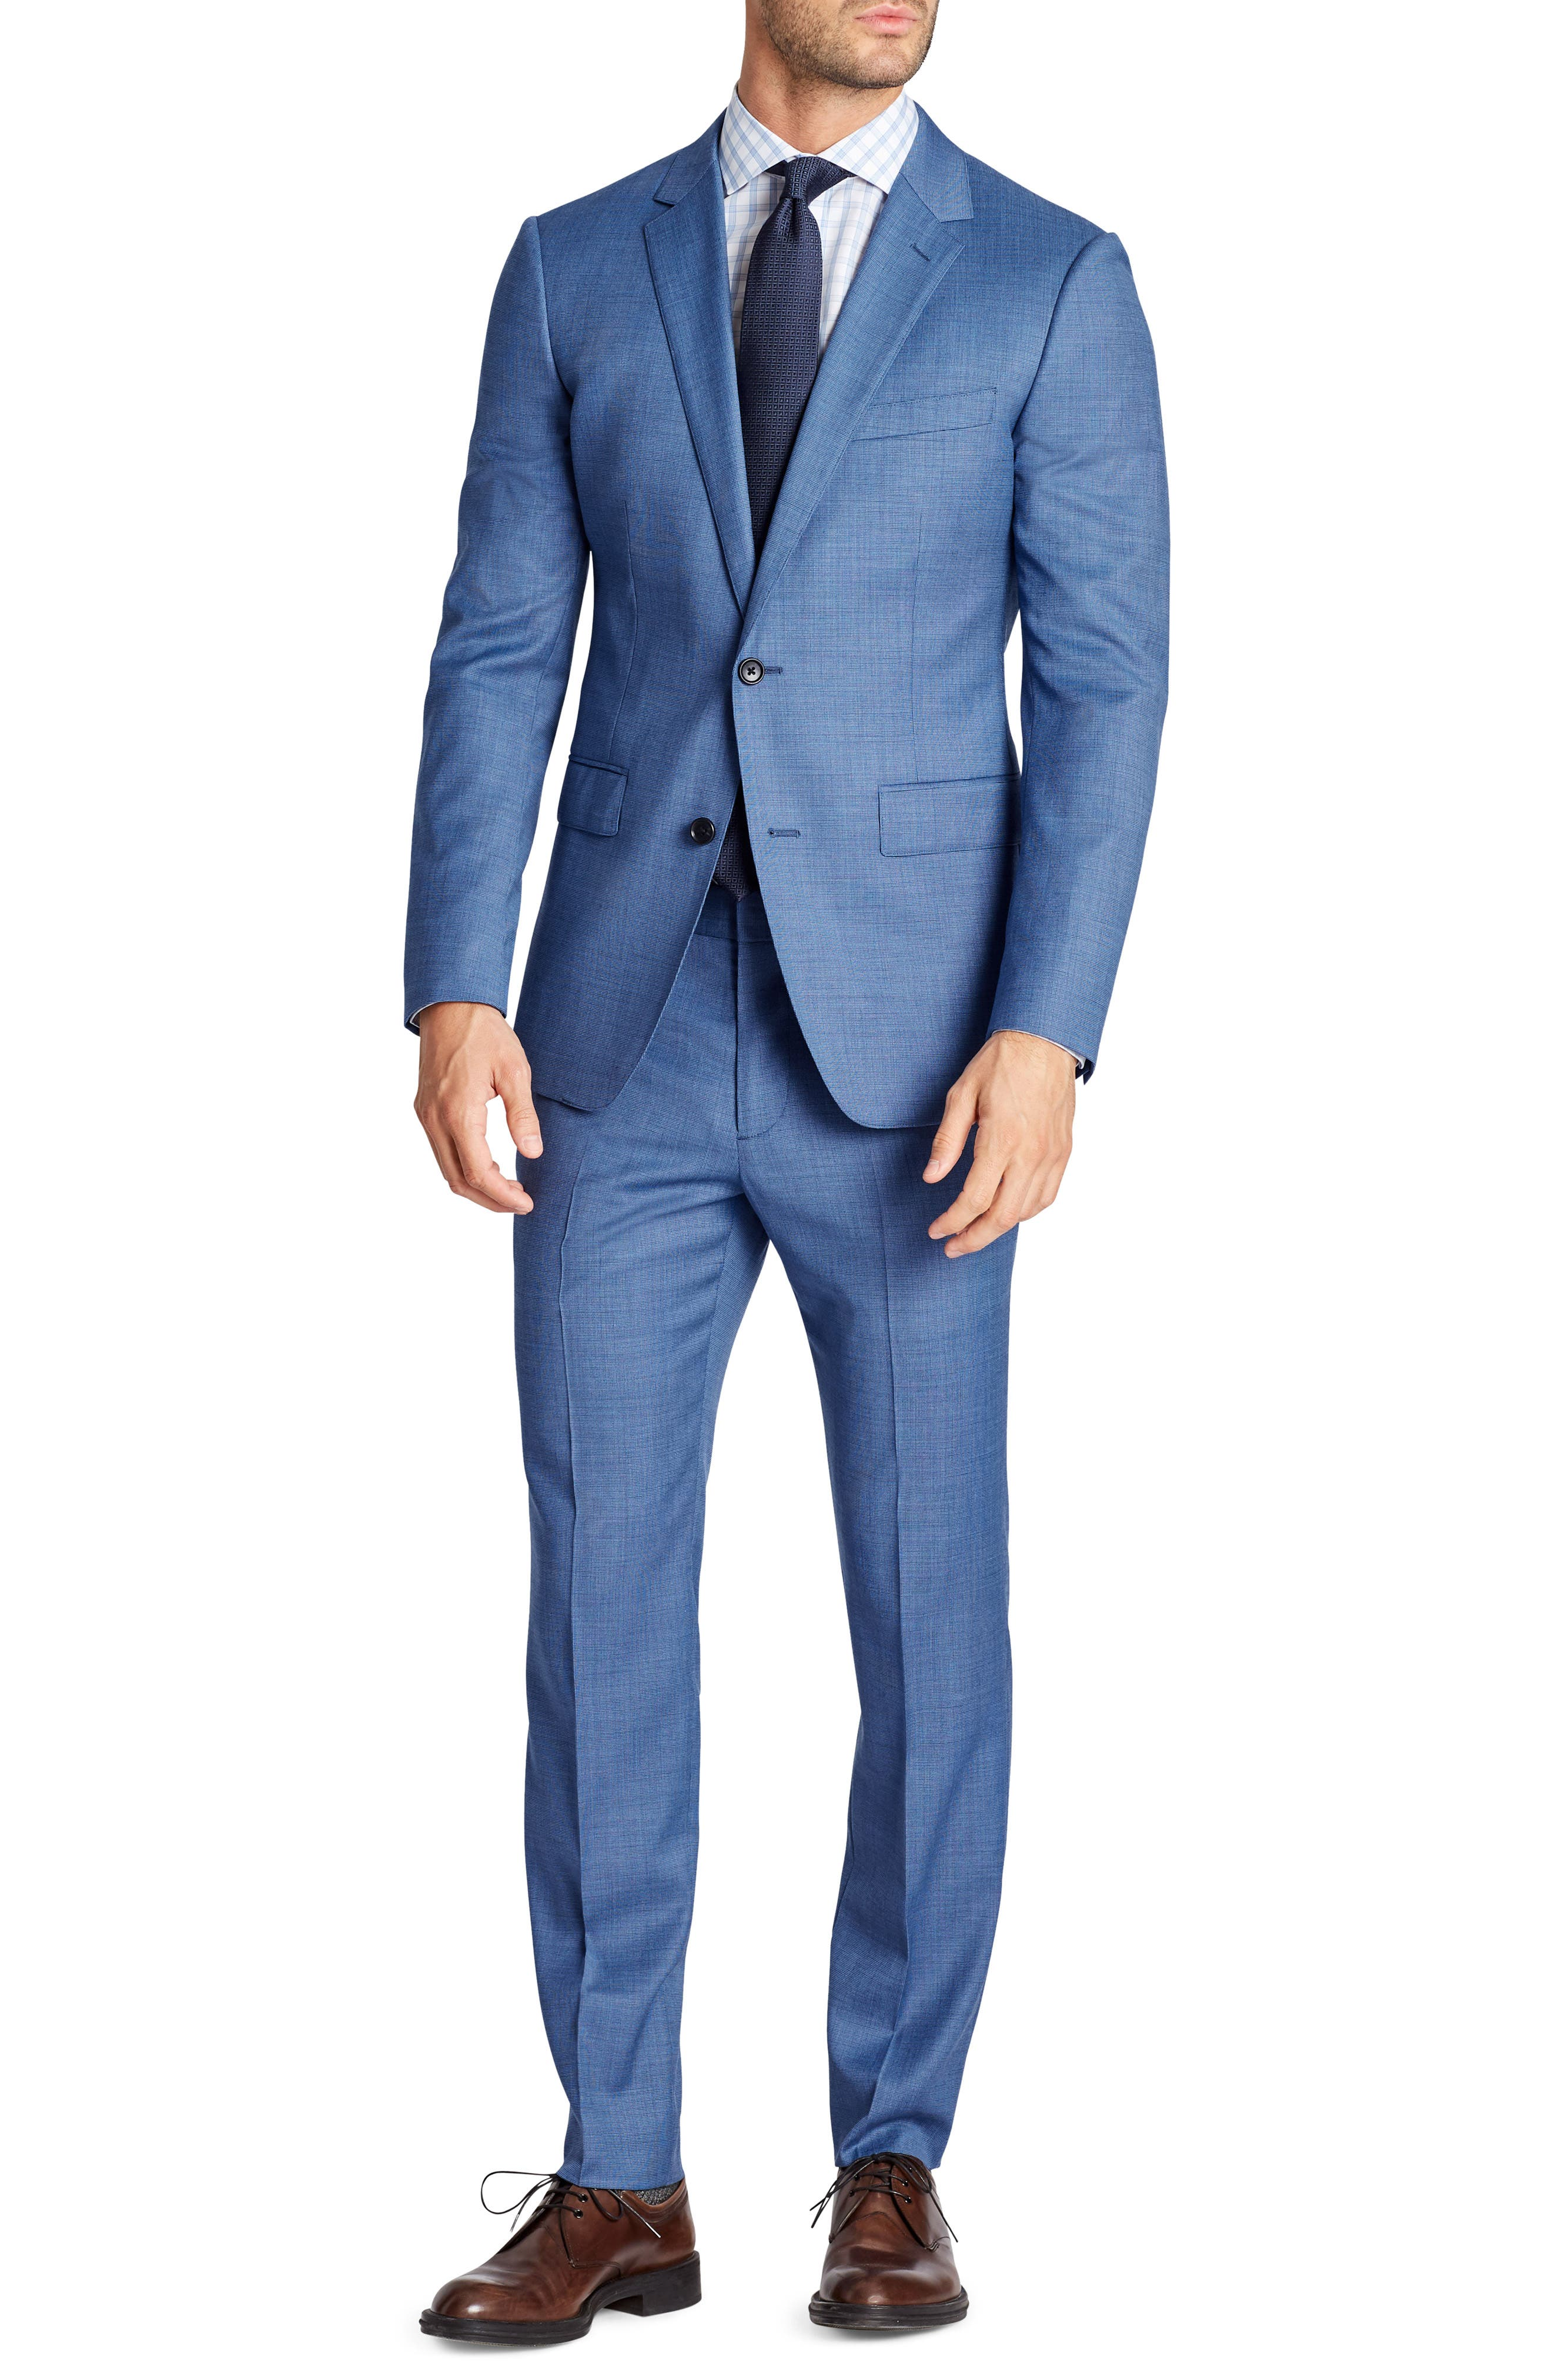 Jetsetter Flat Front Solid Stretch Wool Trousers,                             Alternate thumbnail 4, color,                             Brighter Blue